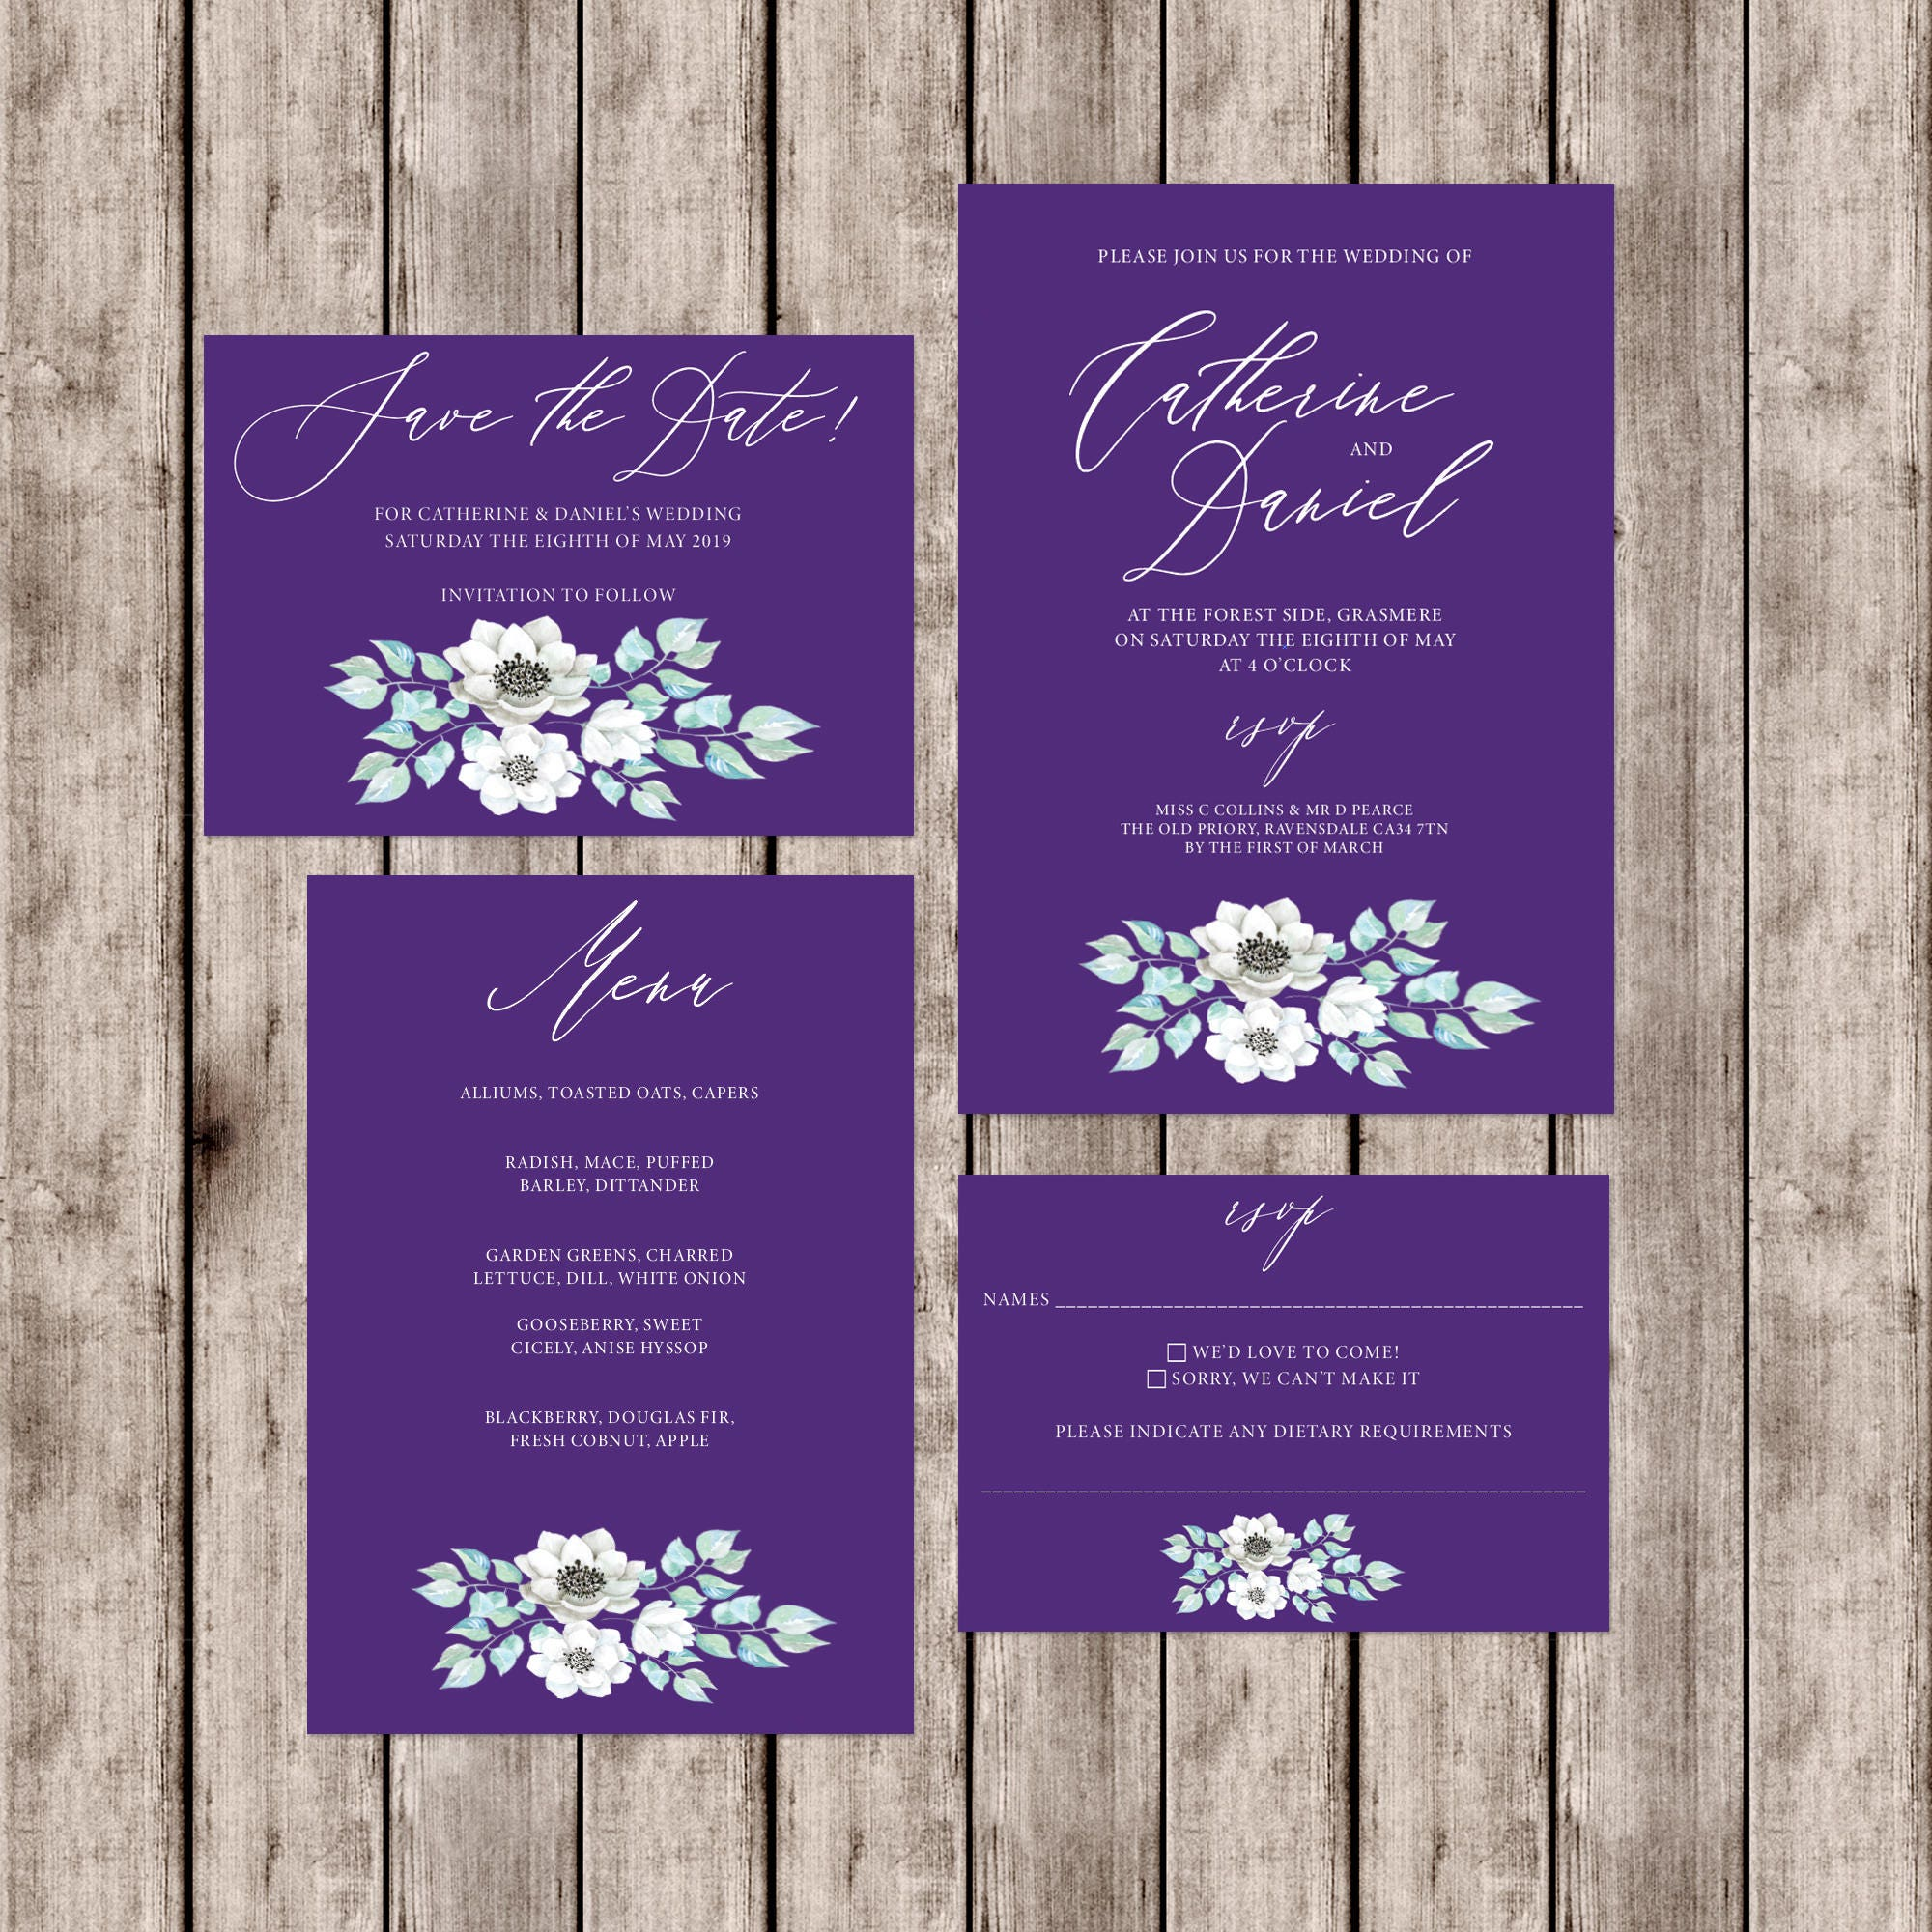 Ultraviolet wedding invitations with floral print and matching